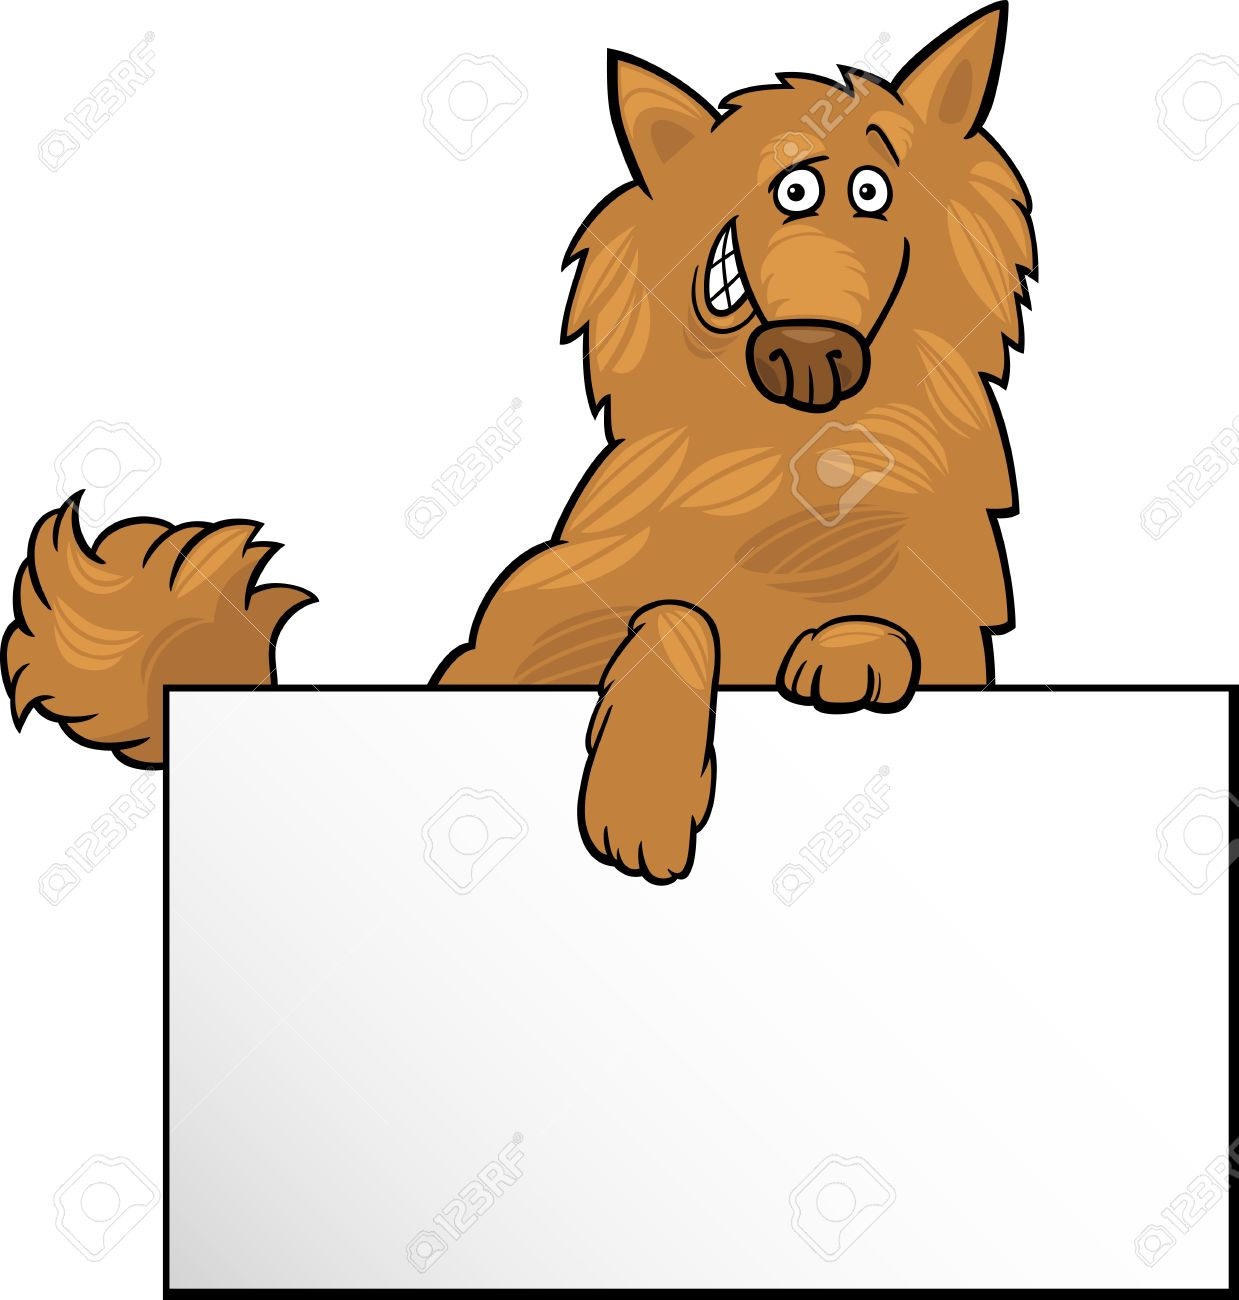 Cartoon Illustration Of Funny Shaggy Dog With White Card Or Board ...